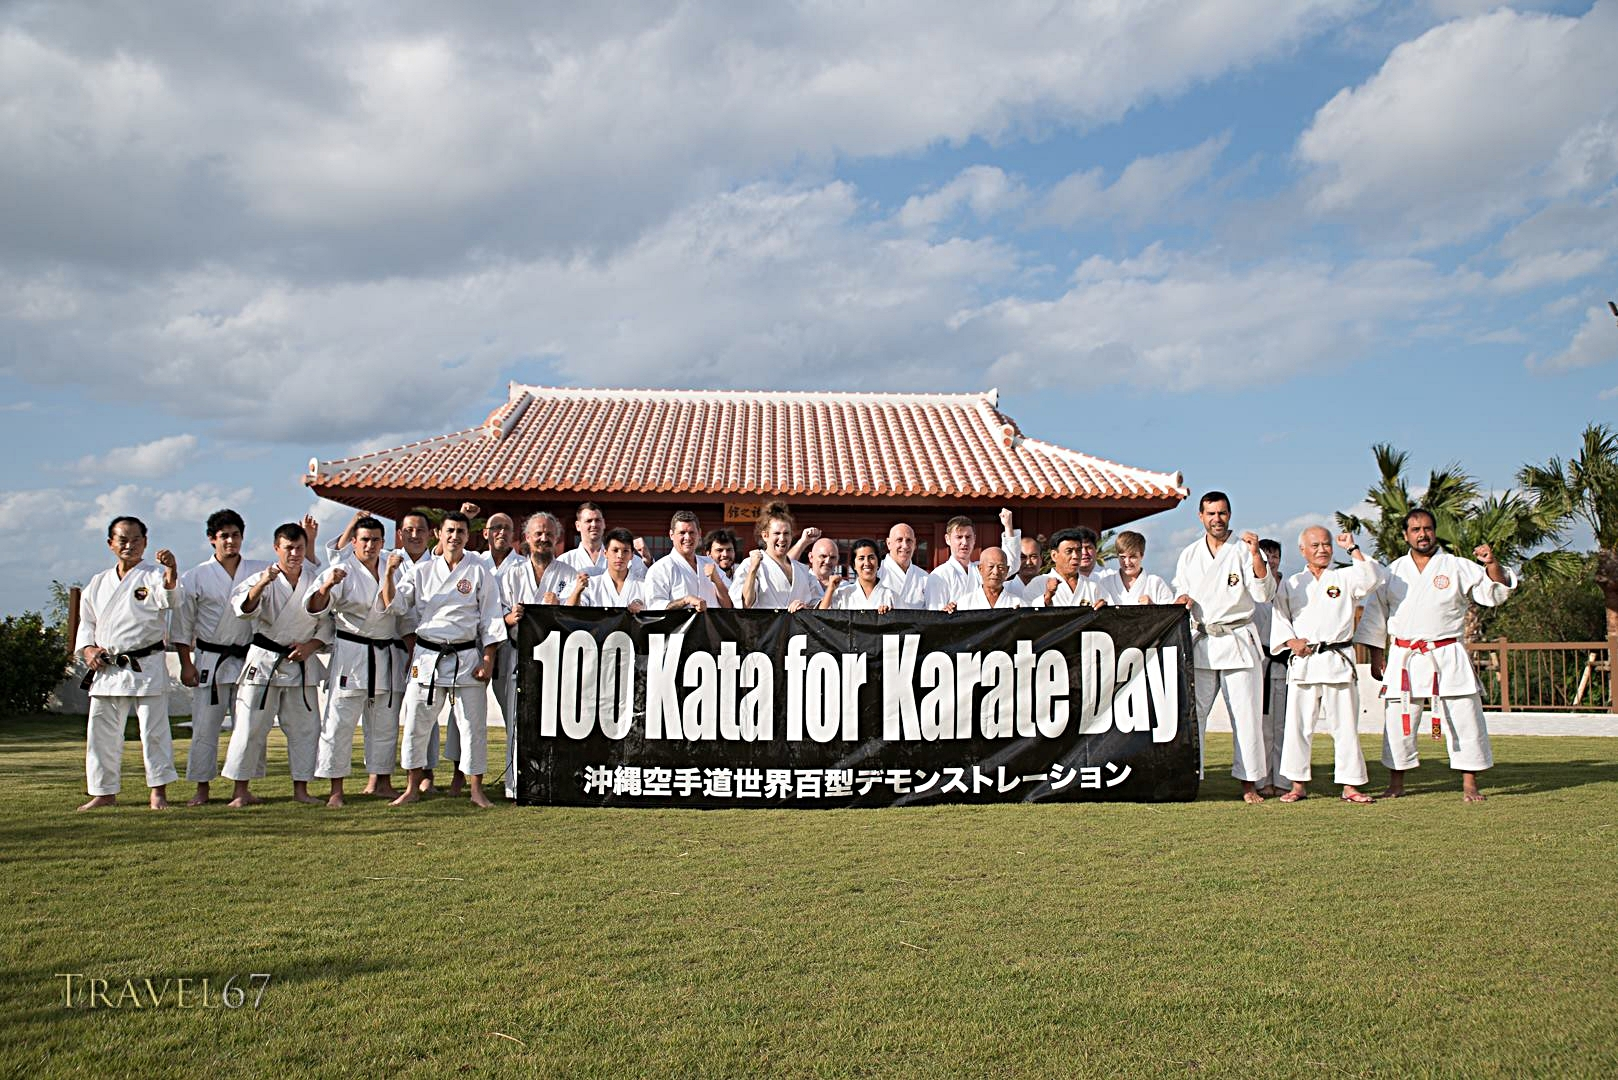 The 100 Kata Challenge participants. Picture courtesy of Chris Wilson Photography (Travel 67)